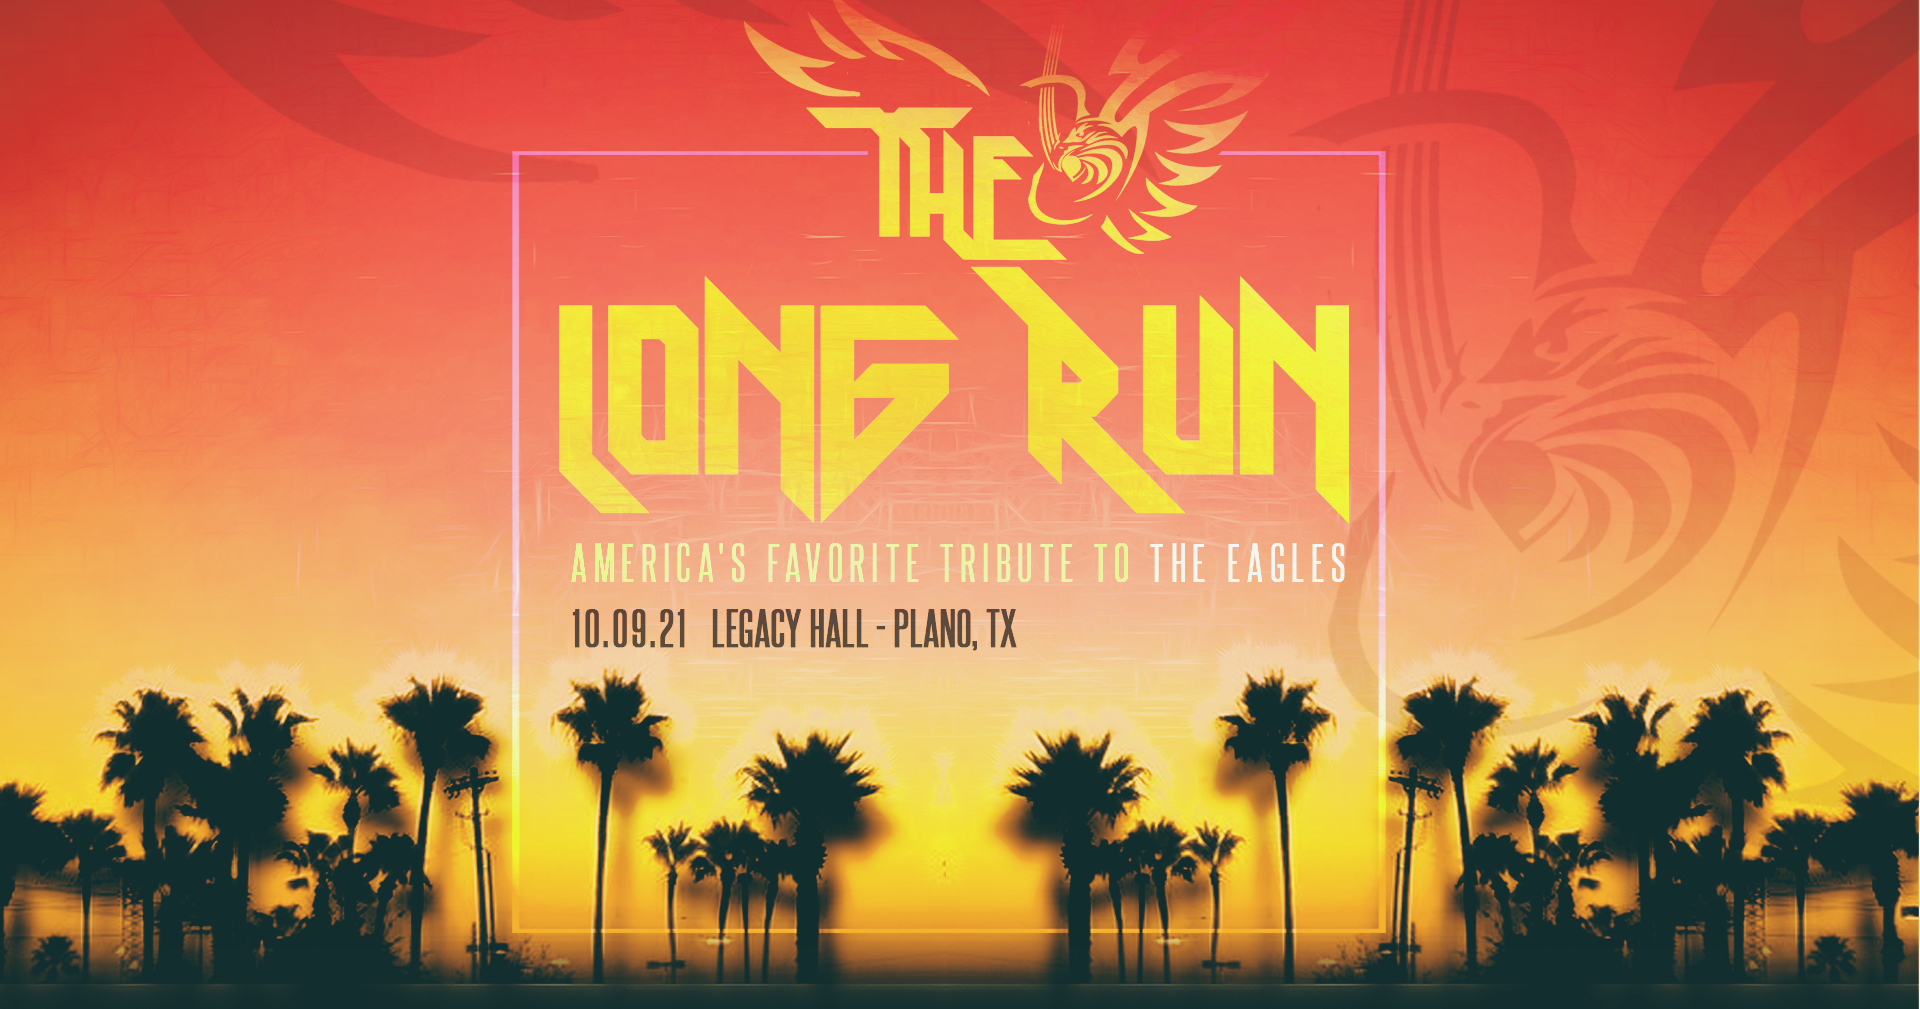 Promo image of Eagles Tribute: The Long Run